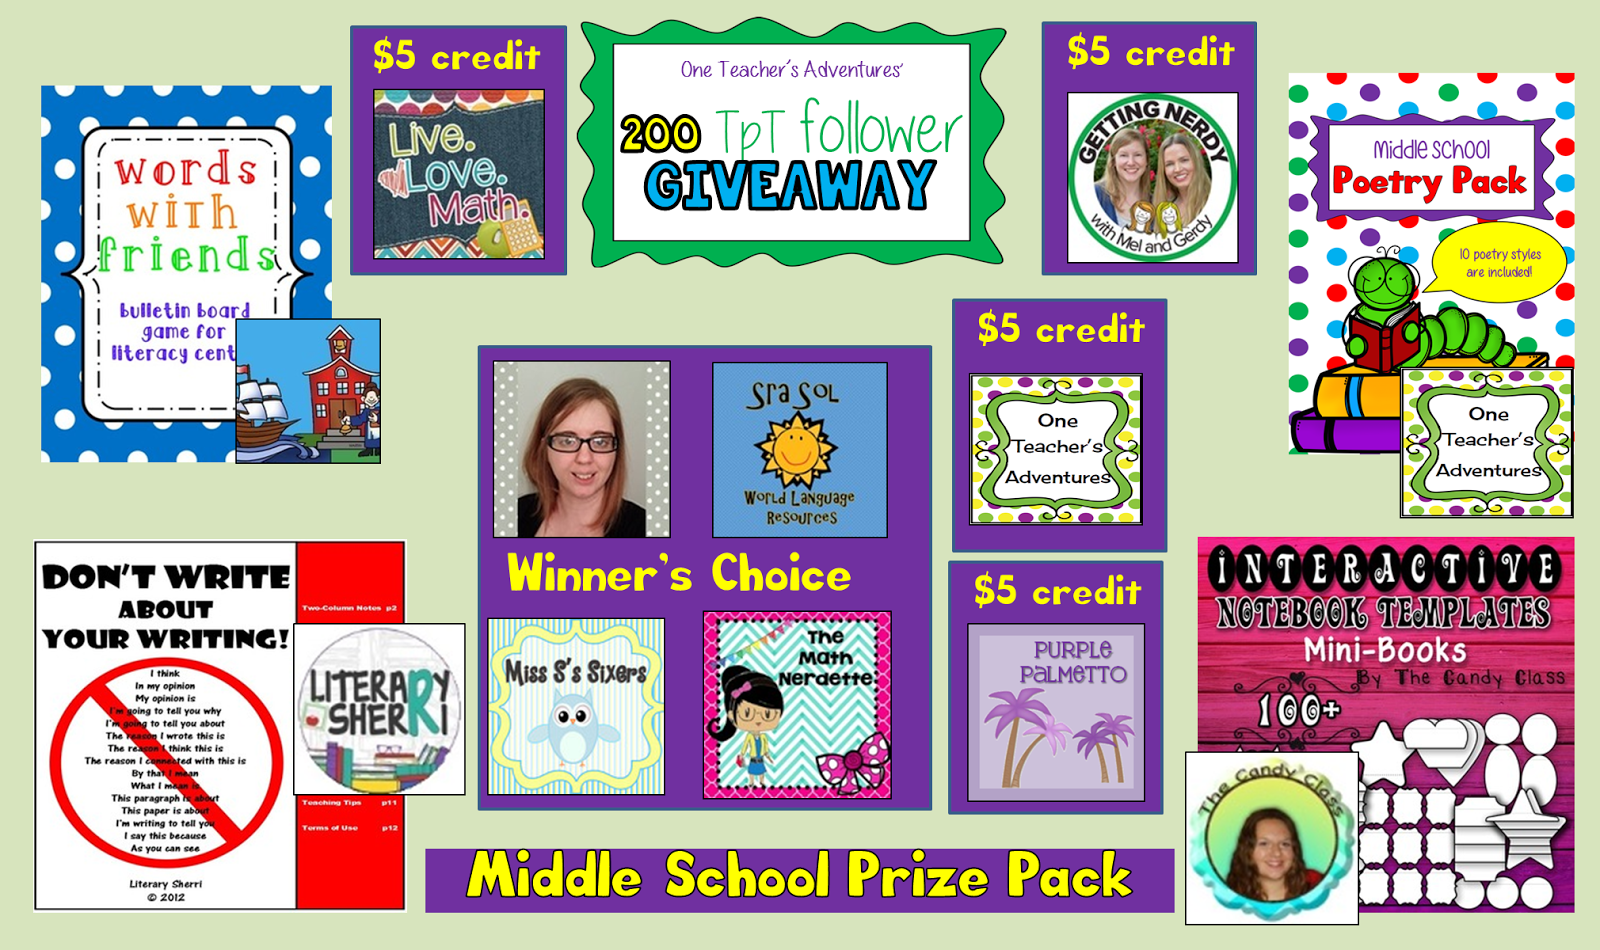 http://oneteachersadventures.blogspot.ca/2014/07/200-tpt-follower-giveaway.html